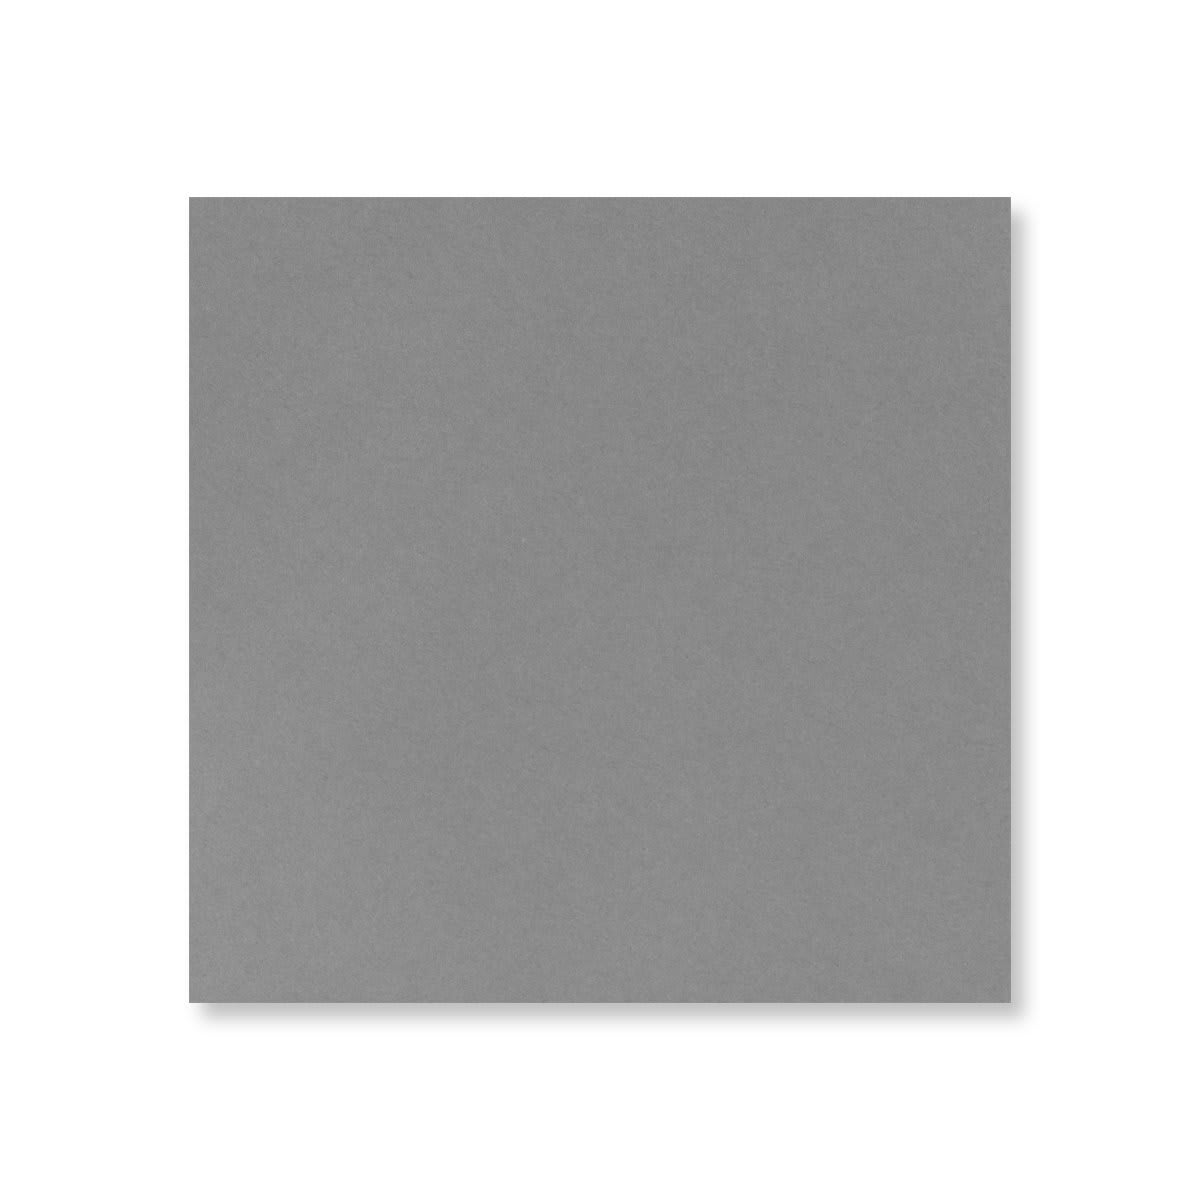 WAGTAIL GREY 130mm SQUARE ENVELOPES 120GSM